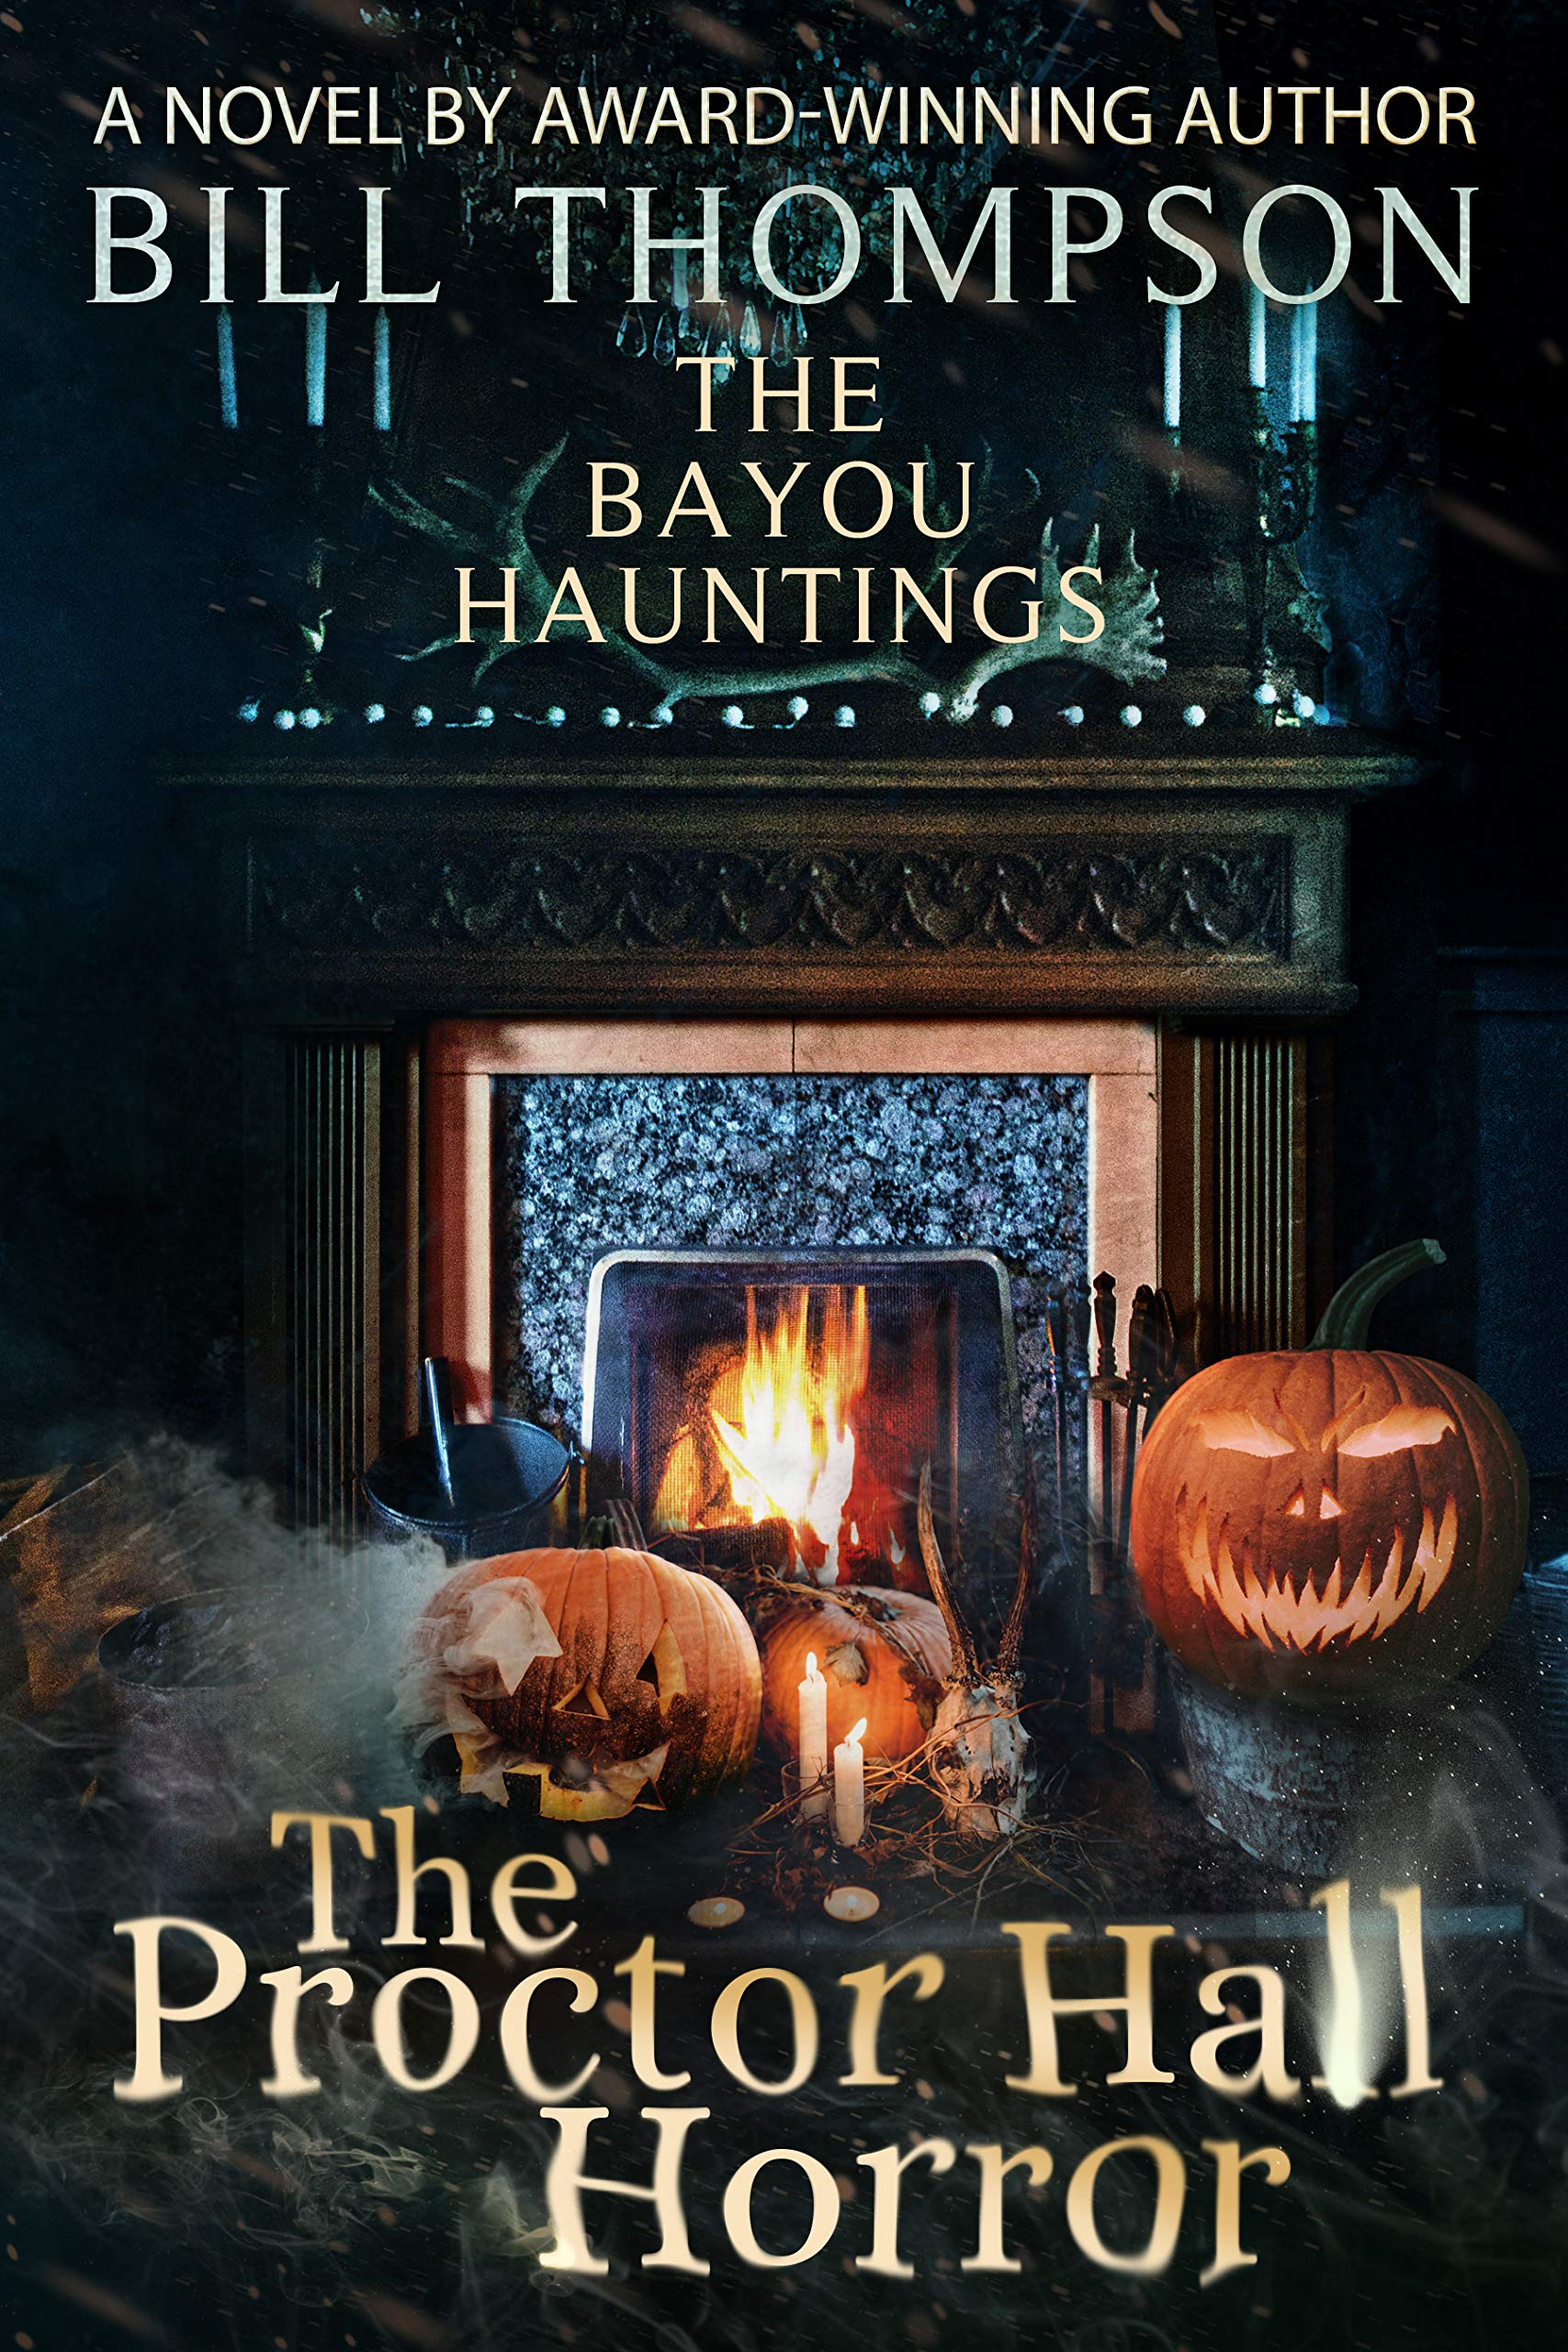 The Proctor Hall Horror (The Bayou Hauntings #7)